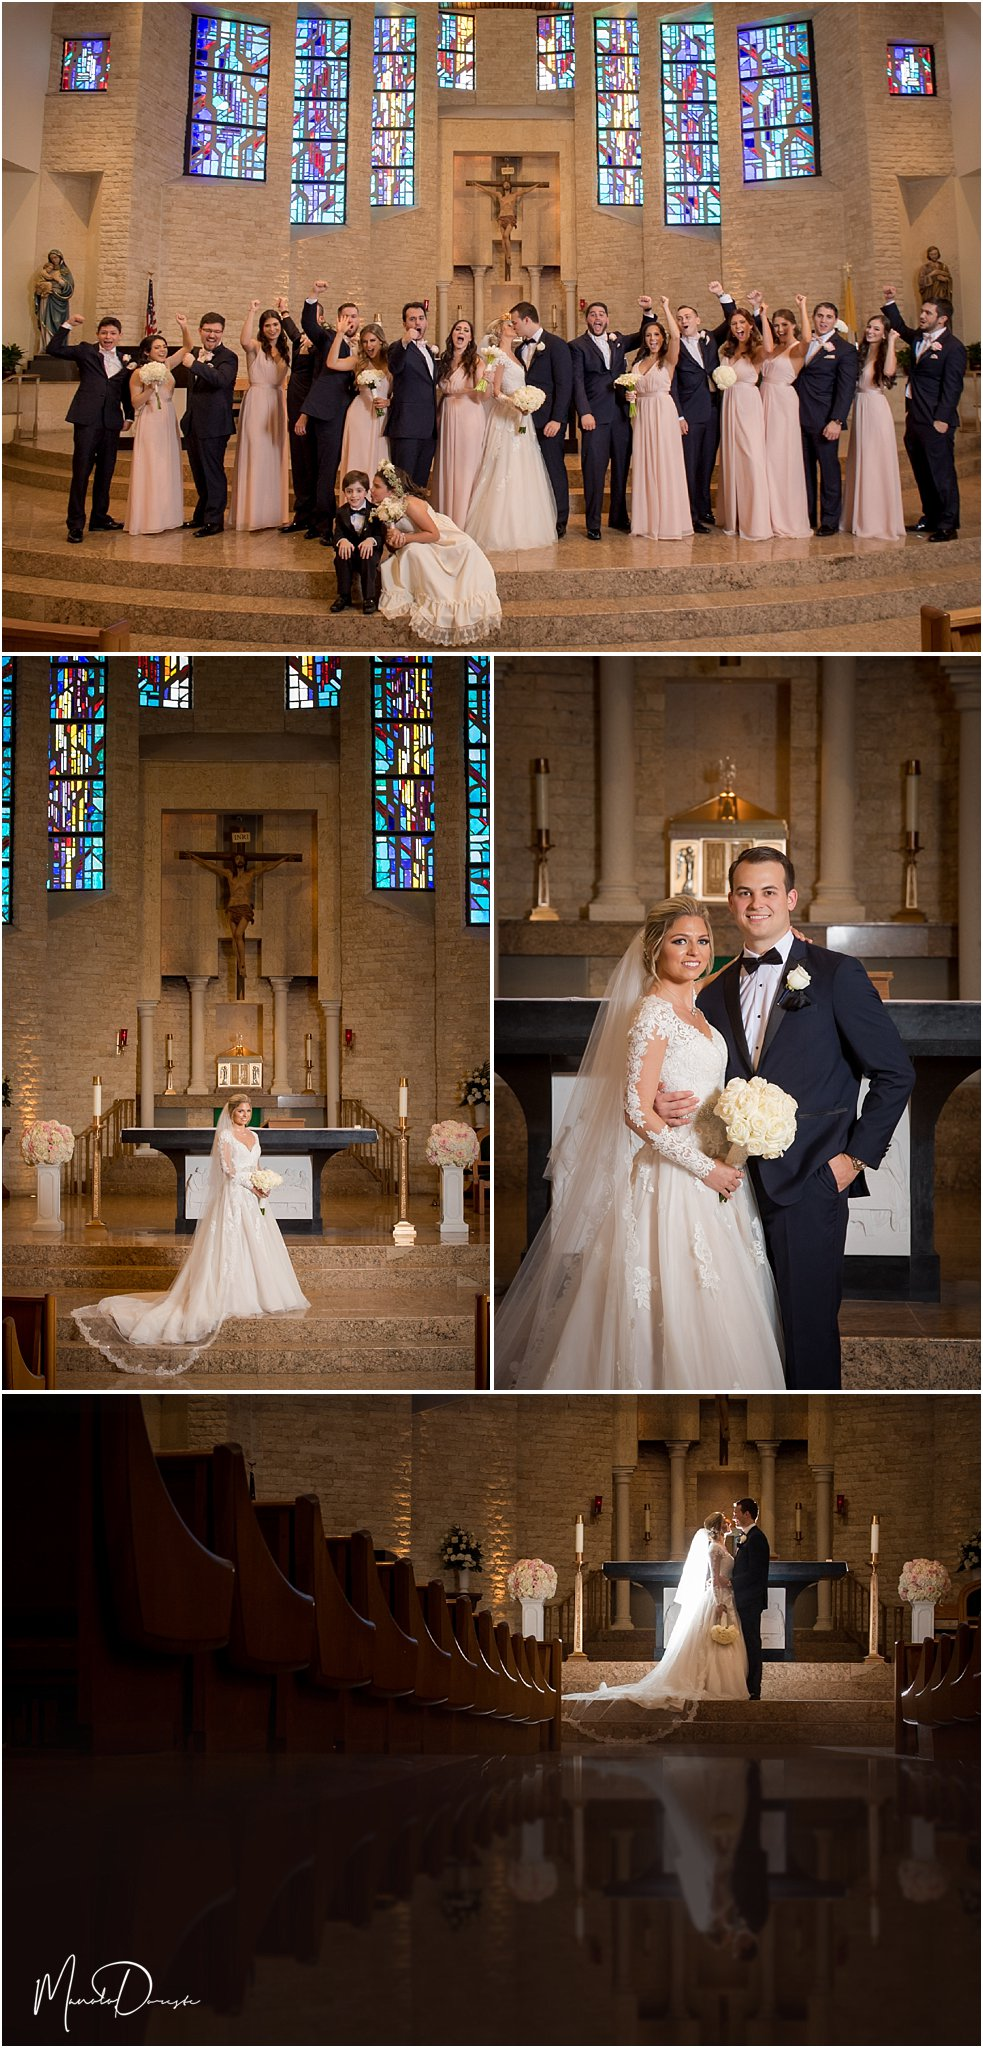 0264_ManoloDoreste_InFocusStudios_Wedding_Family_Photography_Miami_MiamiPhotographer.jpg